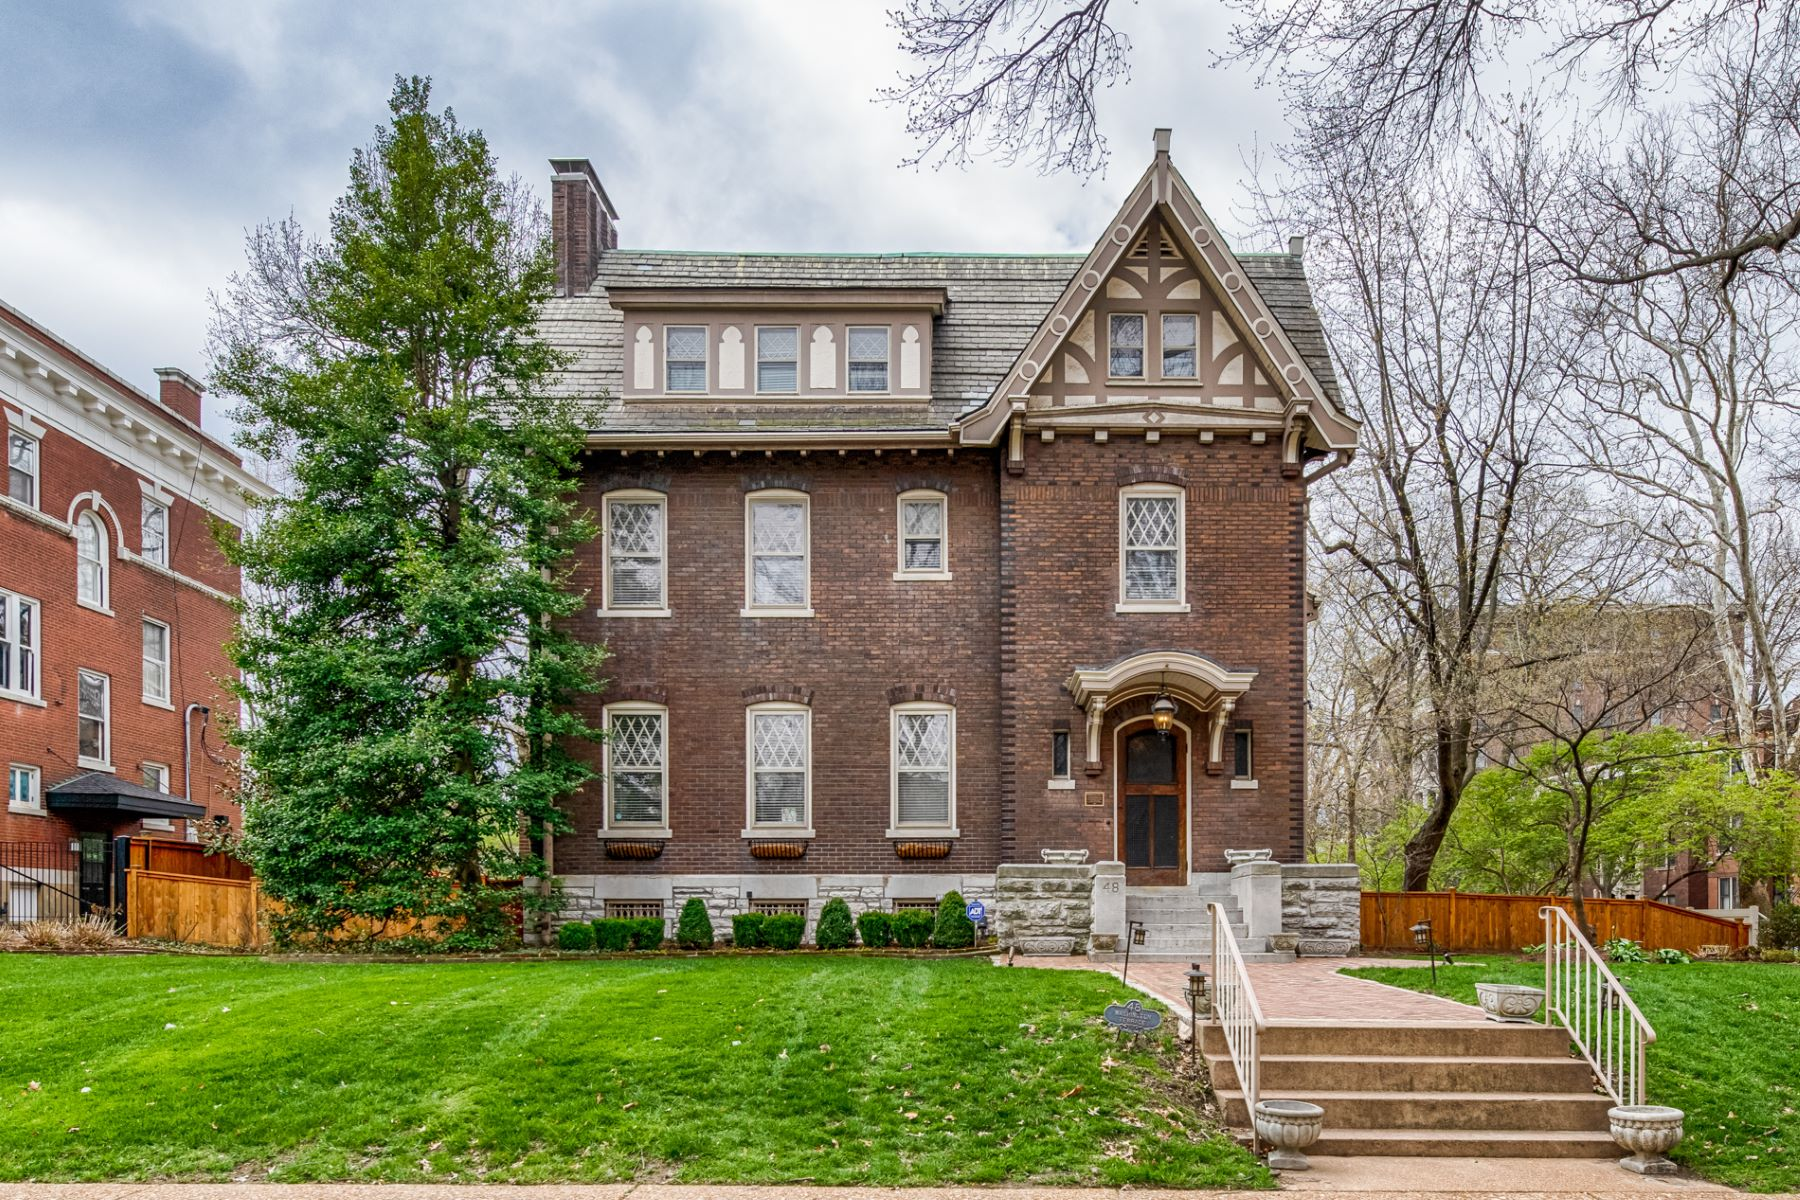 Single Family Home for Sale at Stately Central West End home designed in 1909 by Louis Spiering 48 Washington Terrace St. Louis, Missouri 63112 United States